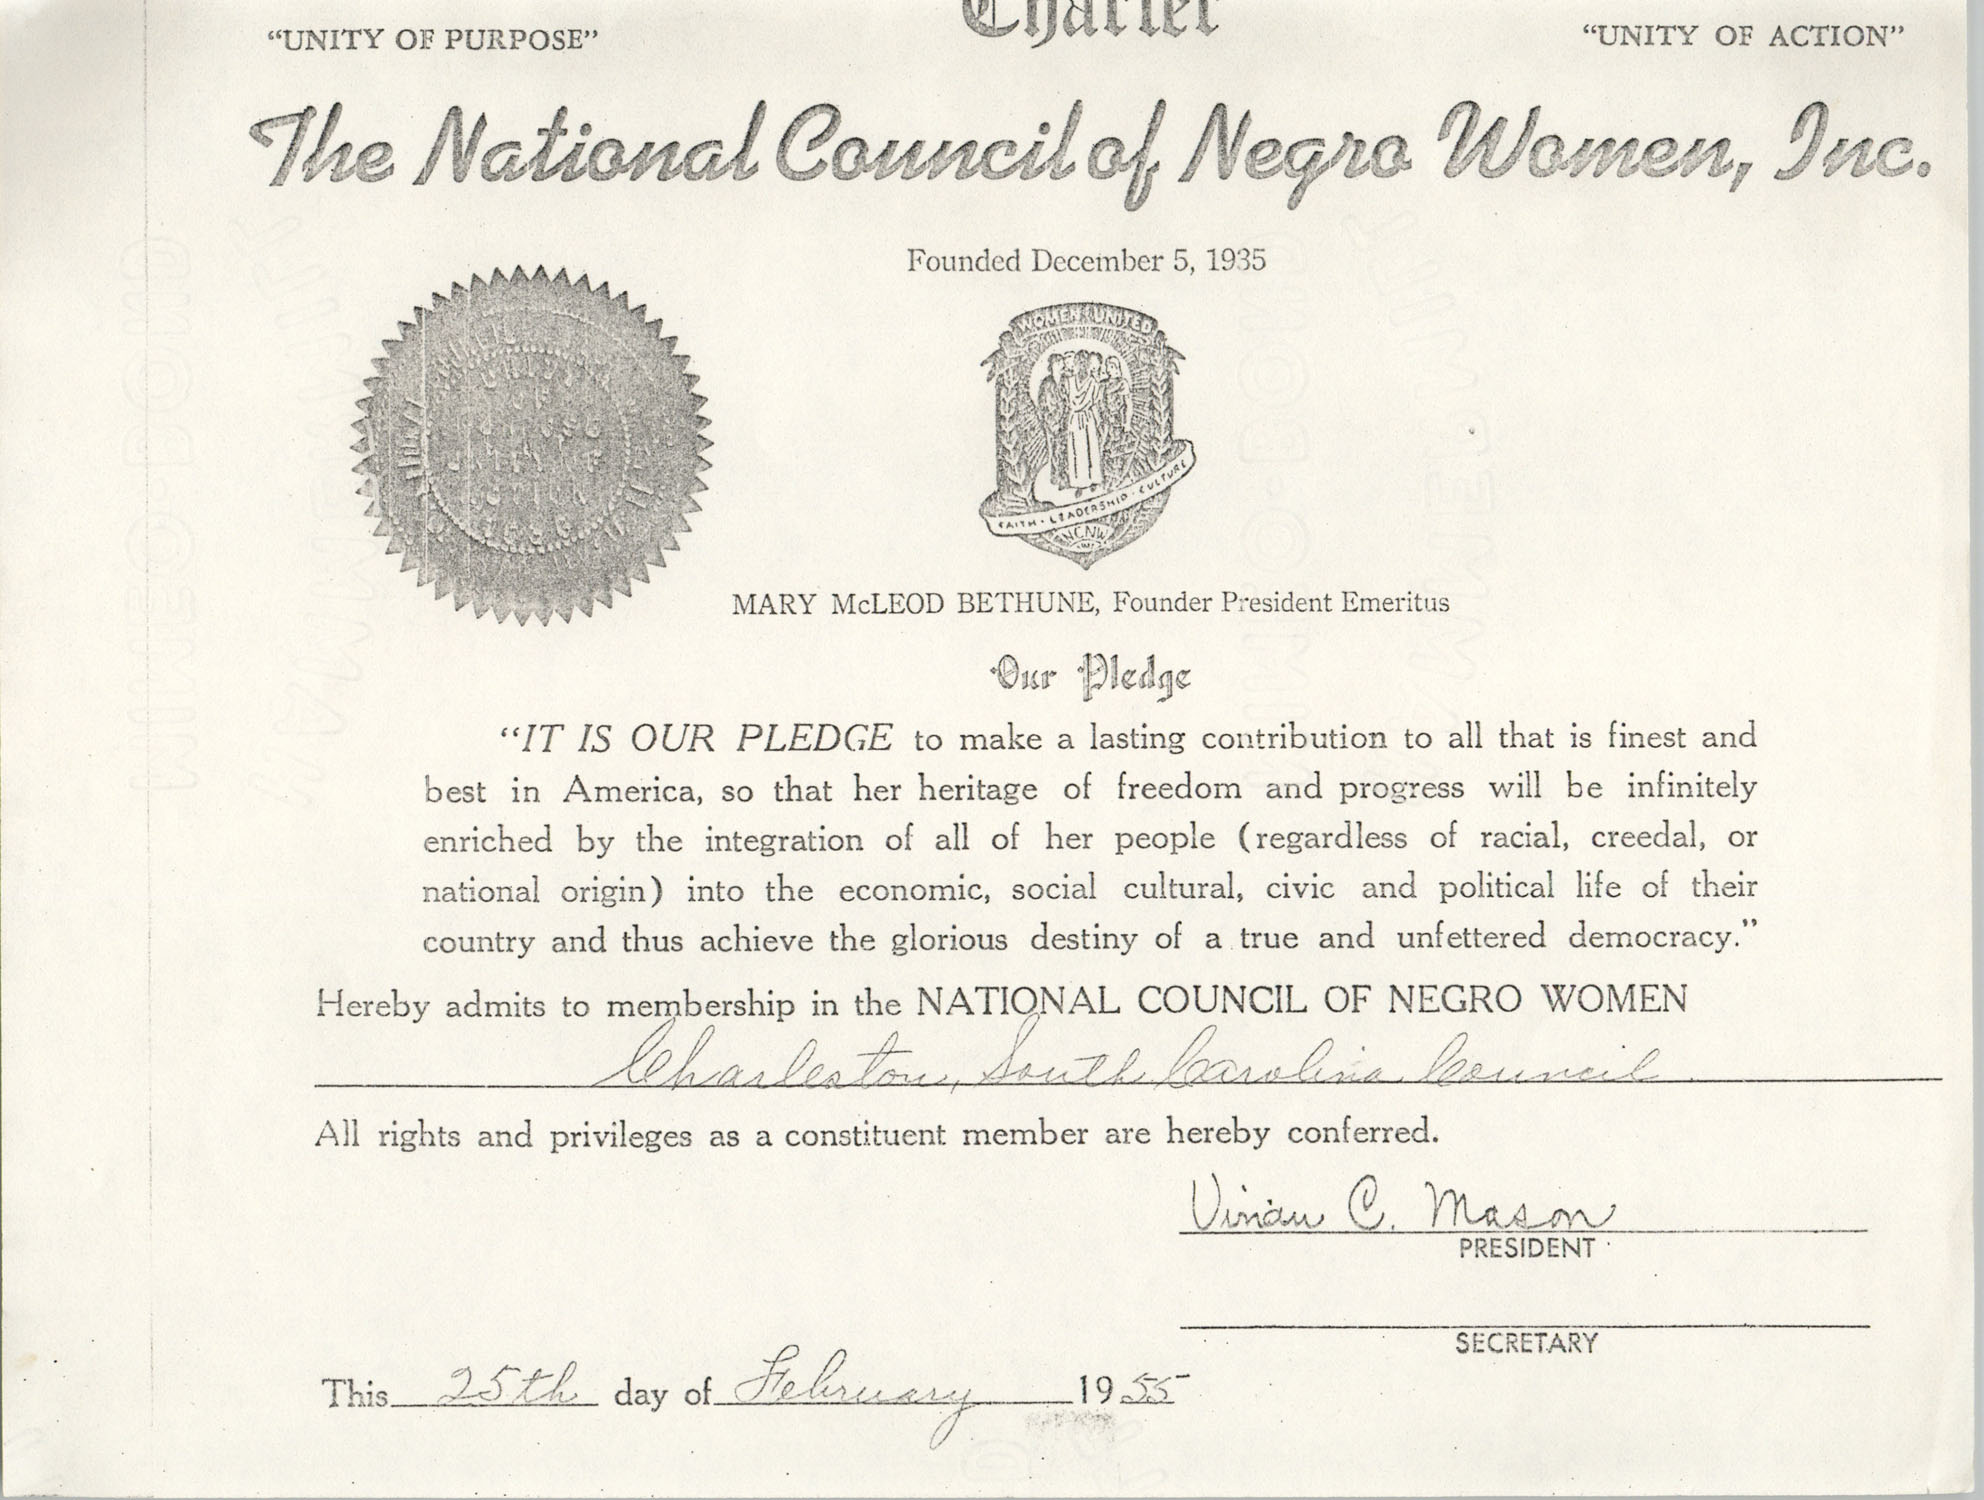 National Council of Negro Women Certificate, February 25, 1955